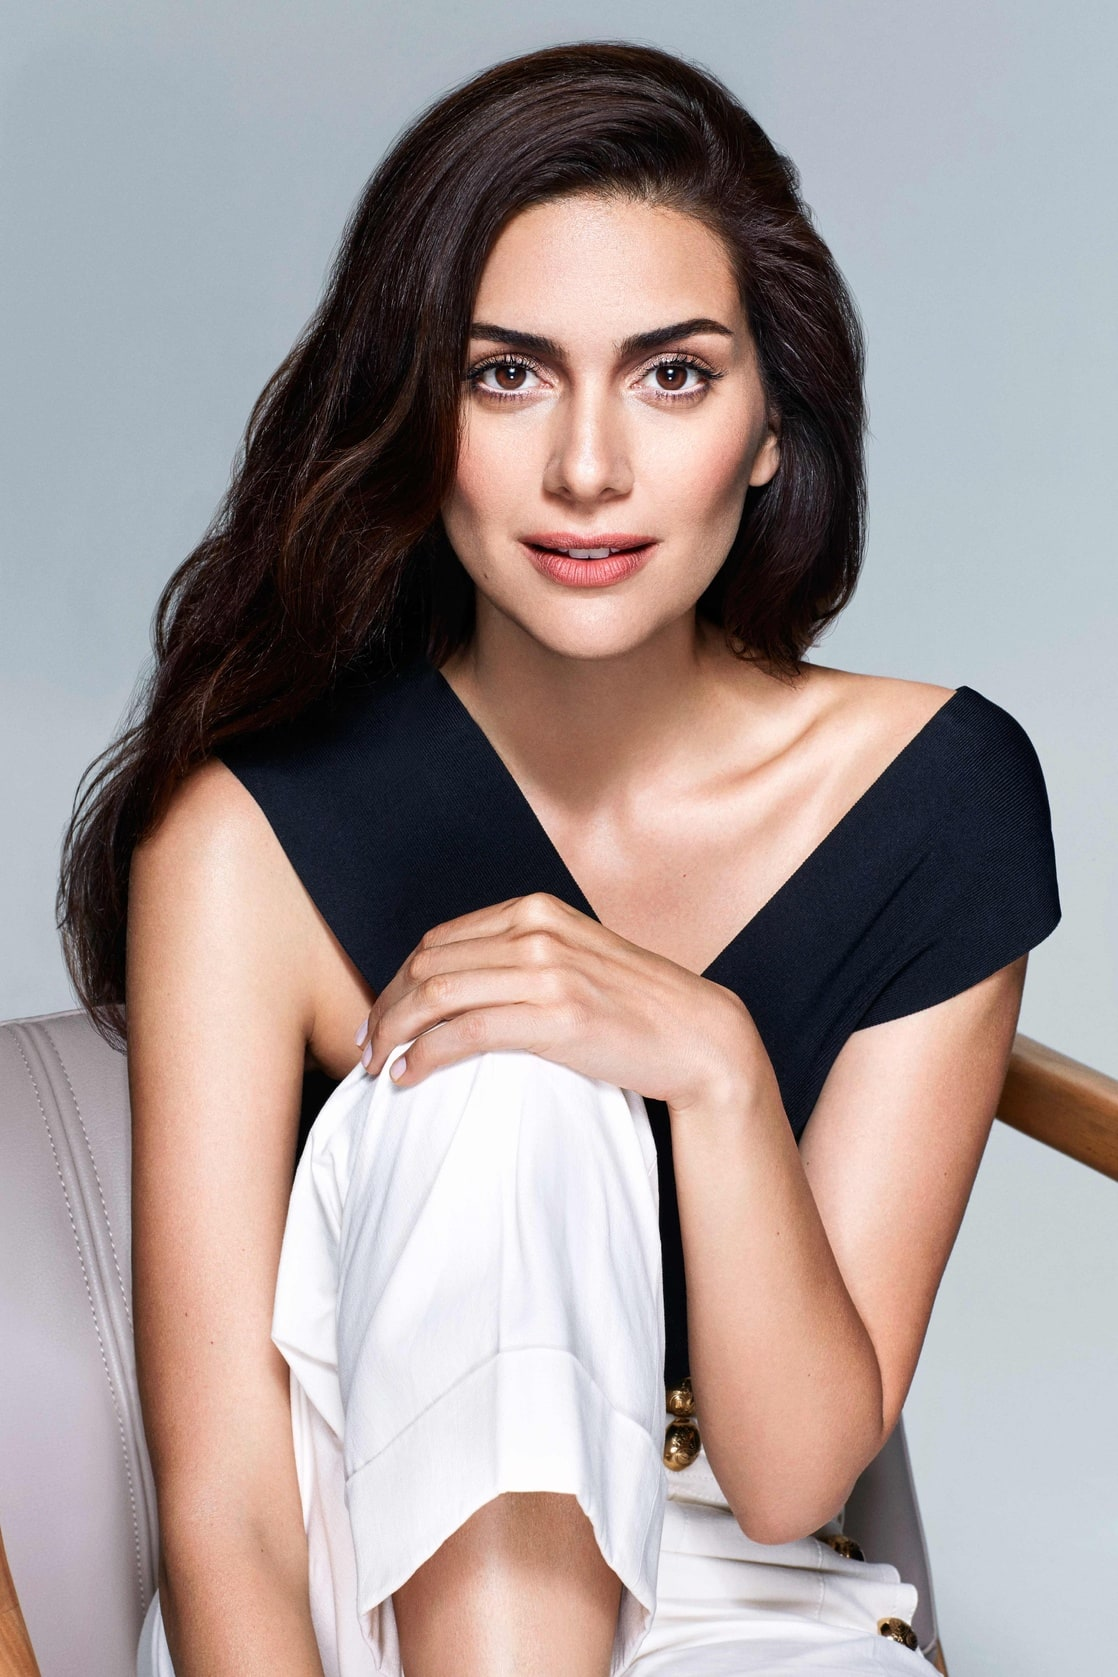 berg252zar korel for marie claire july 2015